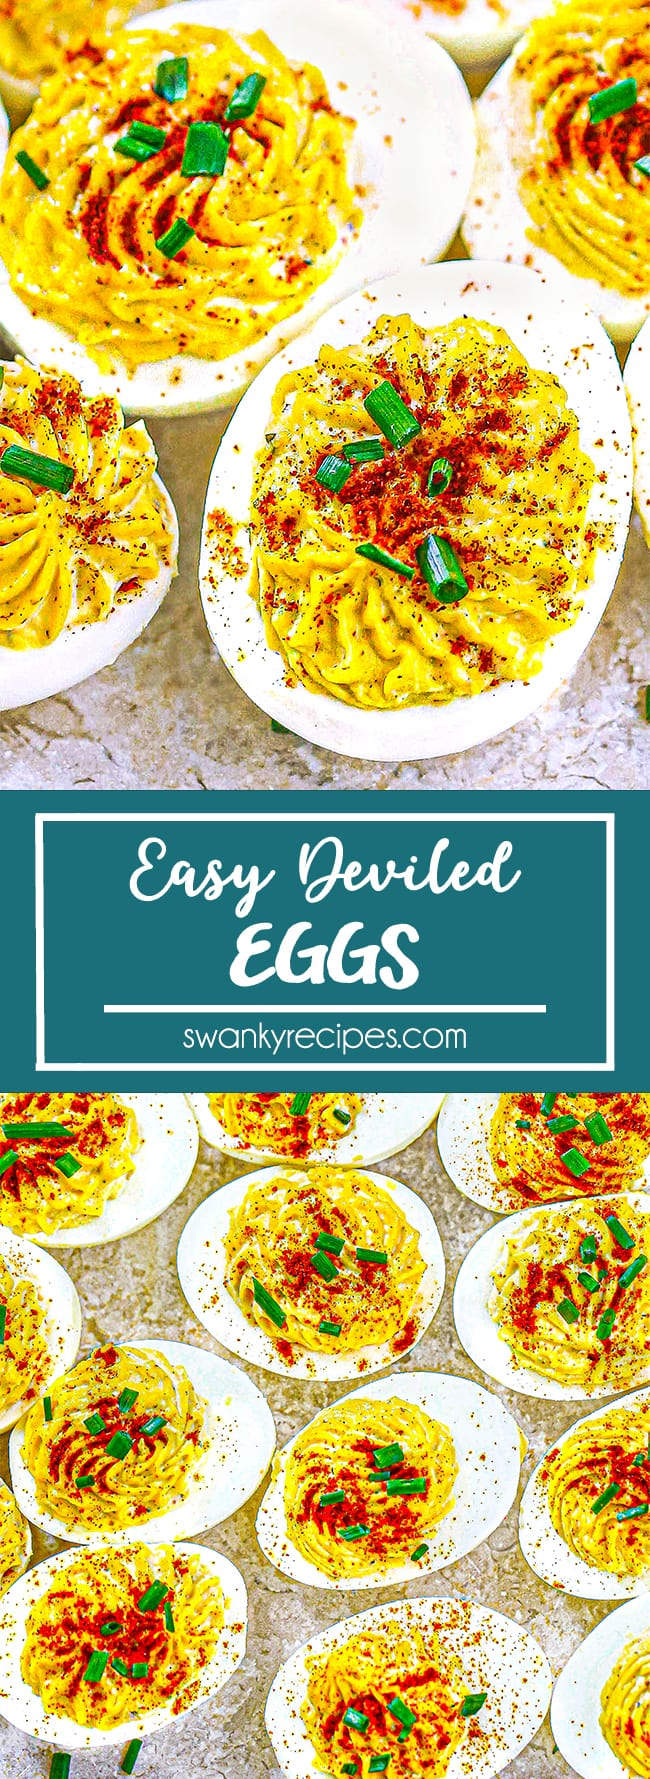 Deviled Eggs - Deviled eggs on a marble pastry board. Egg whites cut in half lengthwise and filled with a delicious creamy filling. Topped with paprika and chives.